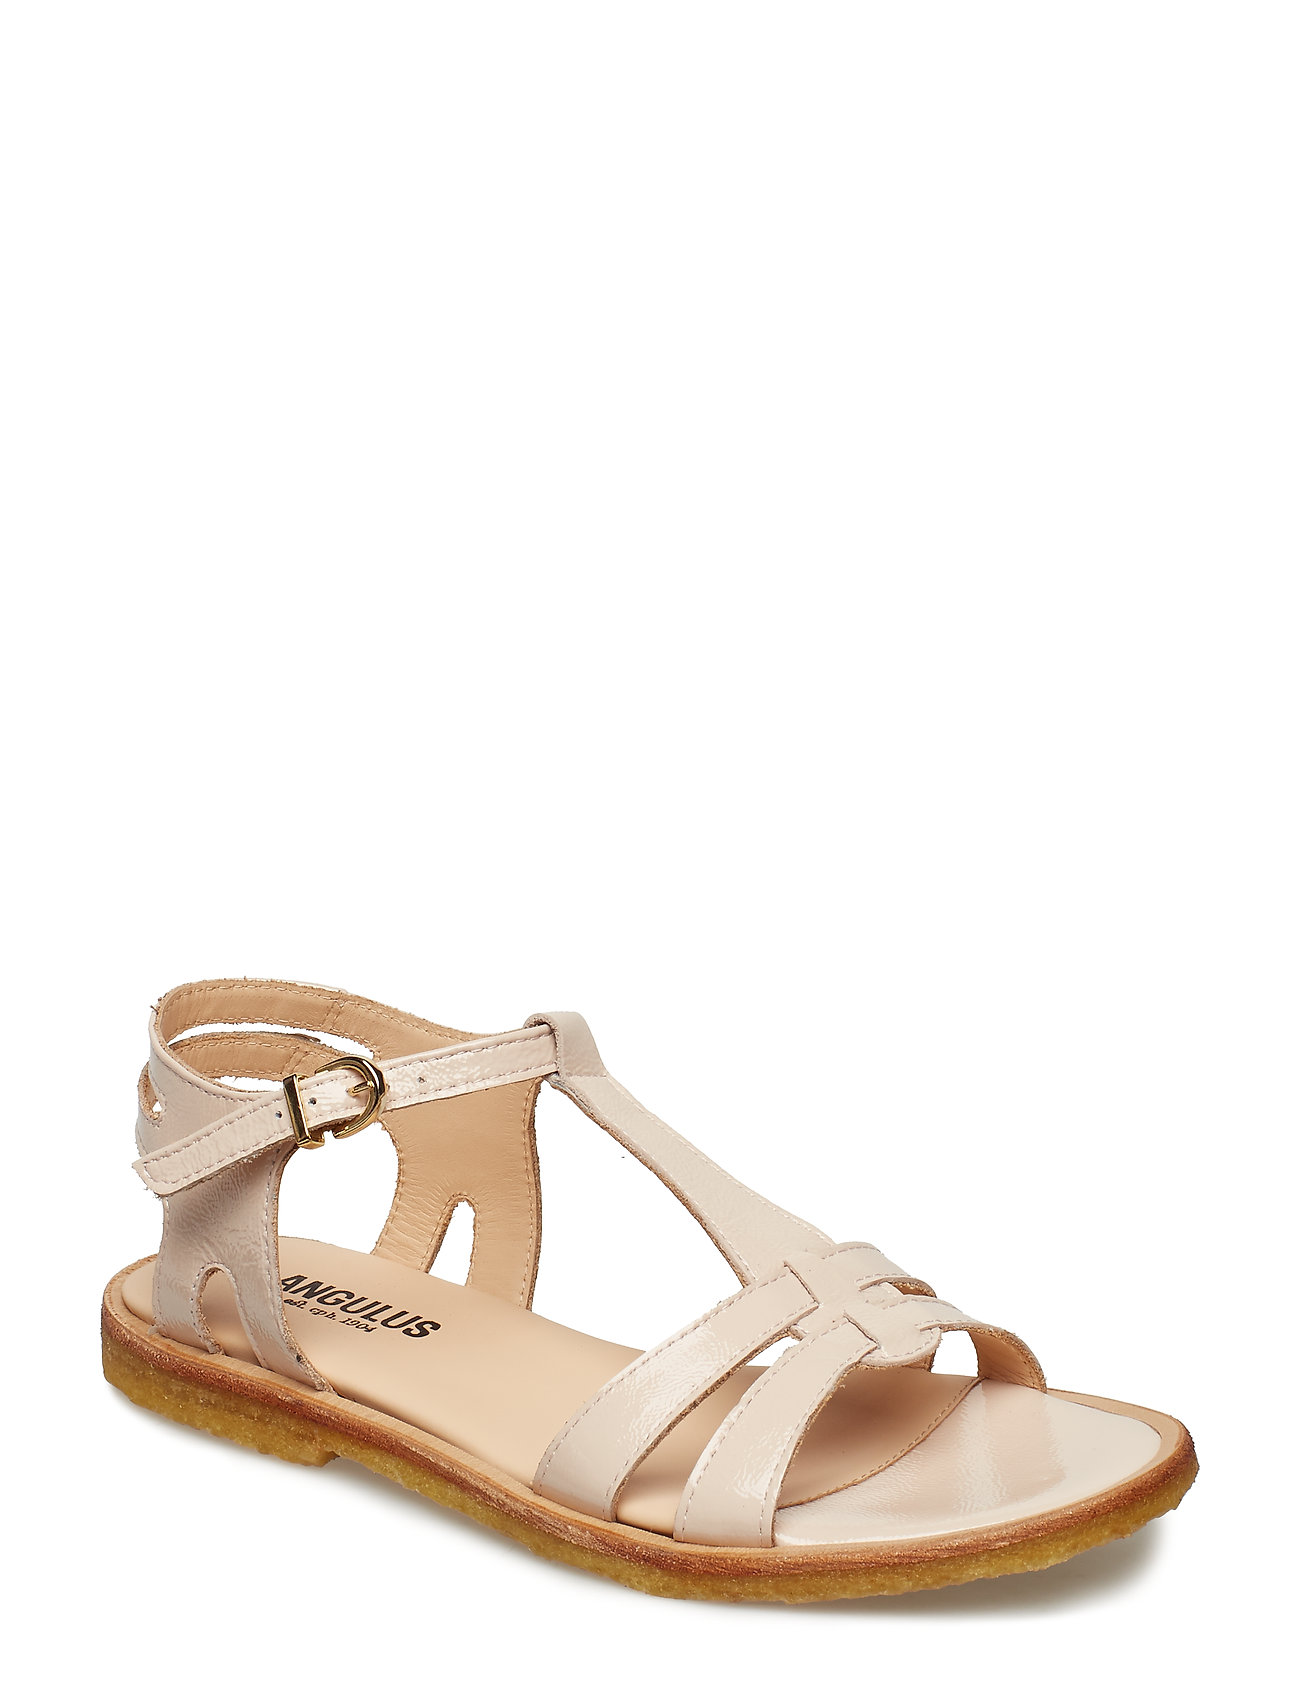 ANGULUS Sandal with leather sole - 2334 POWDER